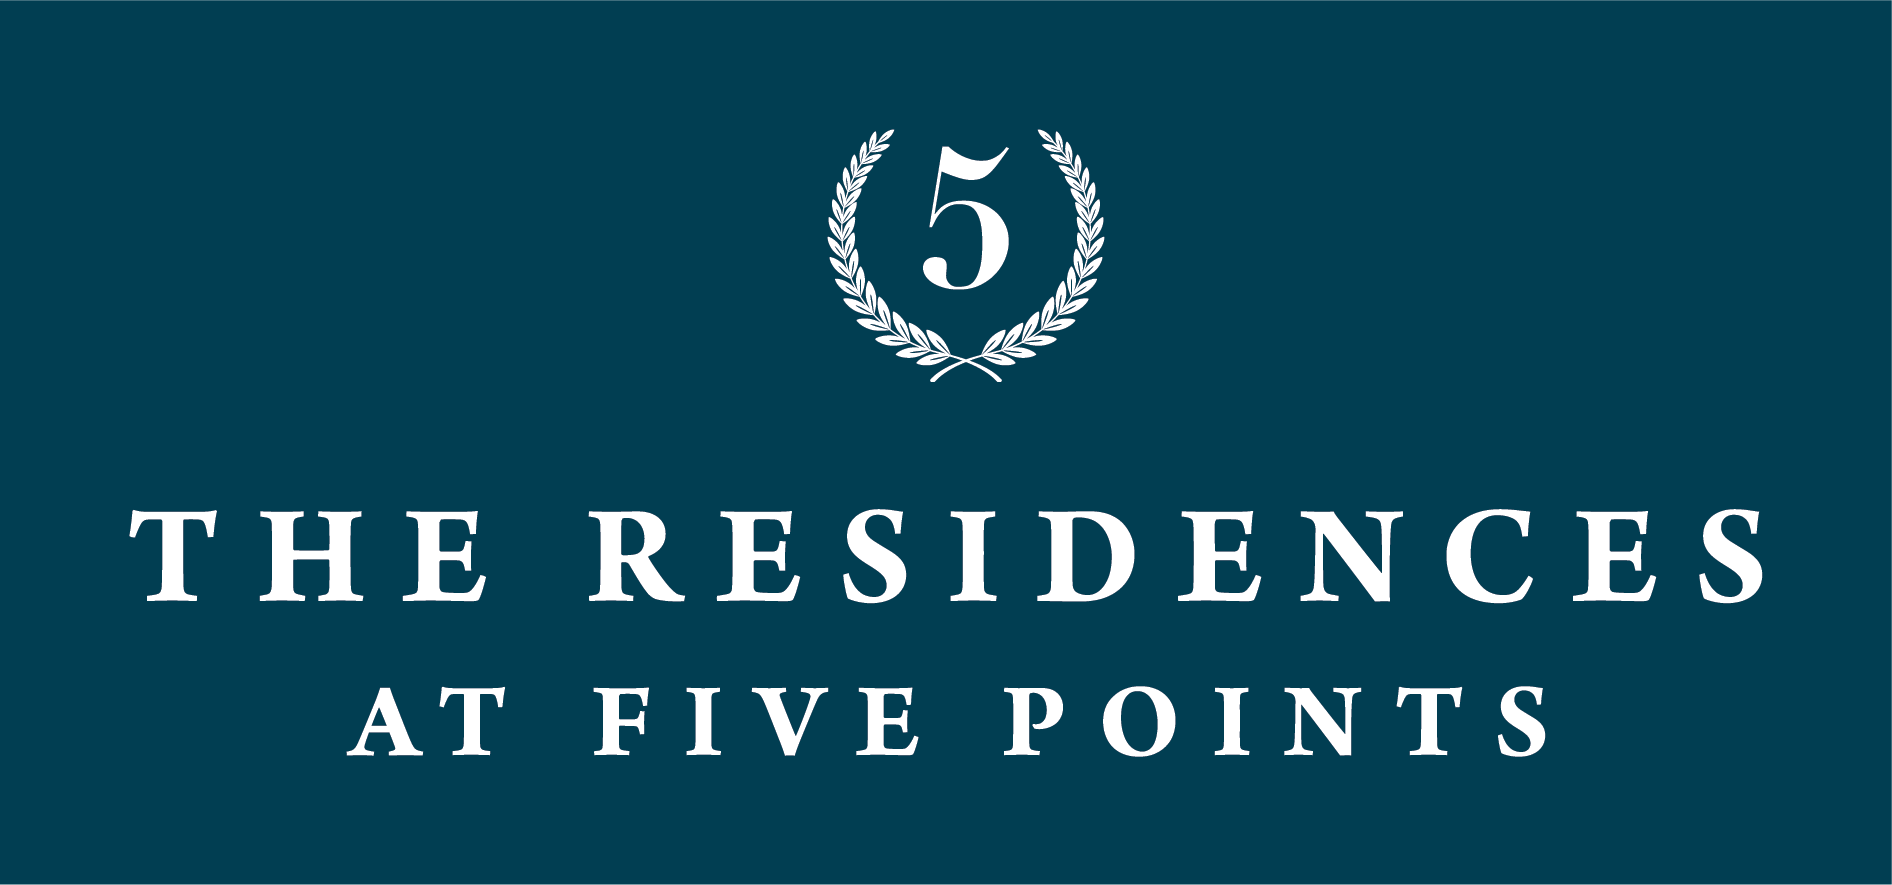 The Residences at the Five Points logo